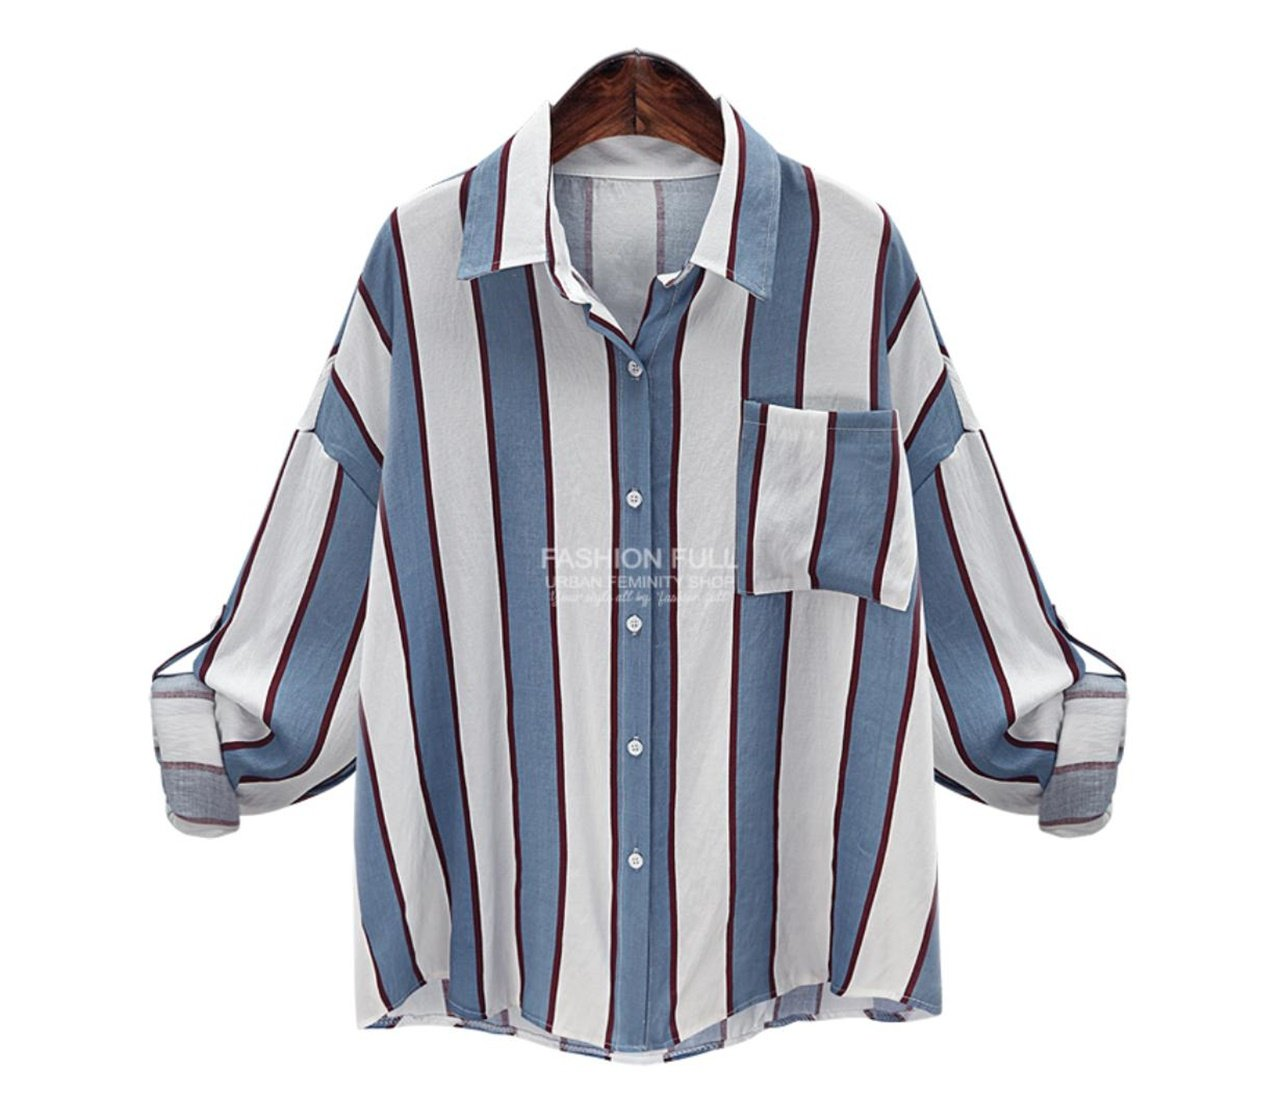 ten is heart Long Sleeve Blouse Shirts Striped Women Cute Tops Big Silhouette(Medium, Sax) Hilarious Linen Humorous Office Weird Customized Business Quirky it Fun Flower Novelty Stretchable fine Tops